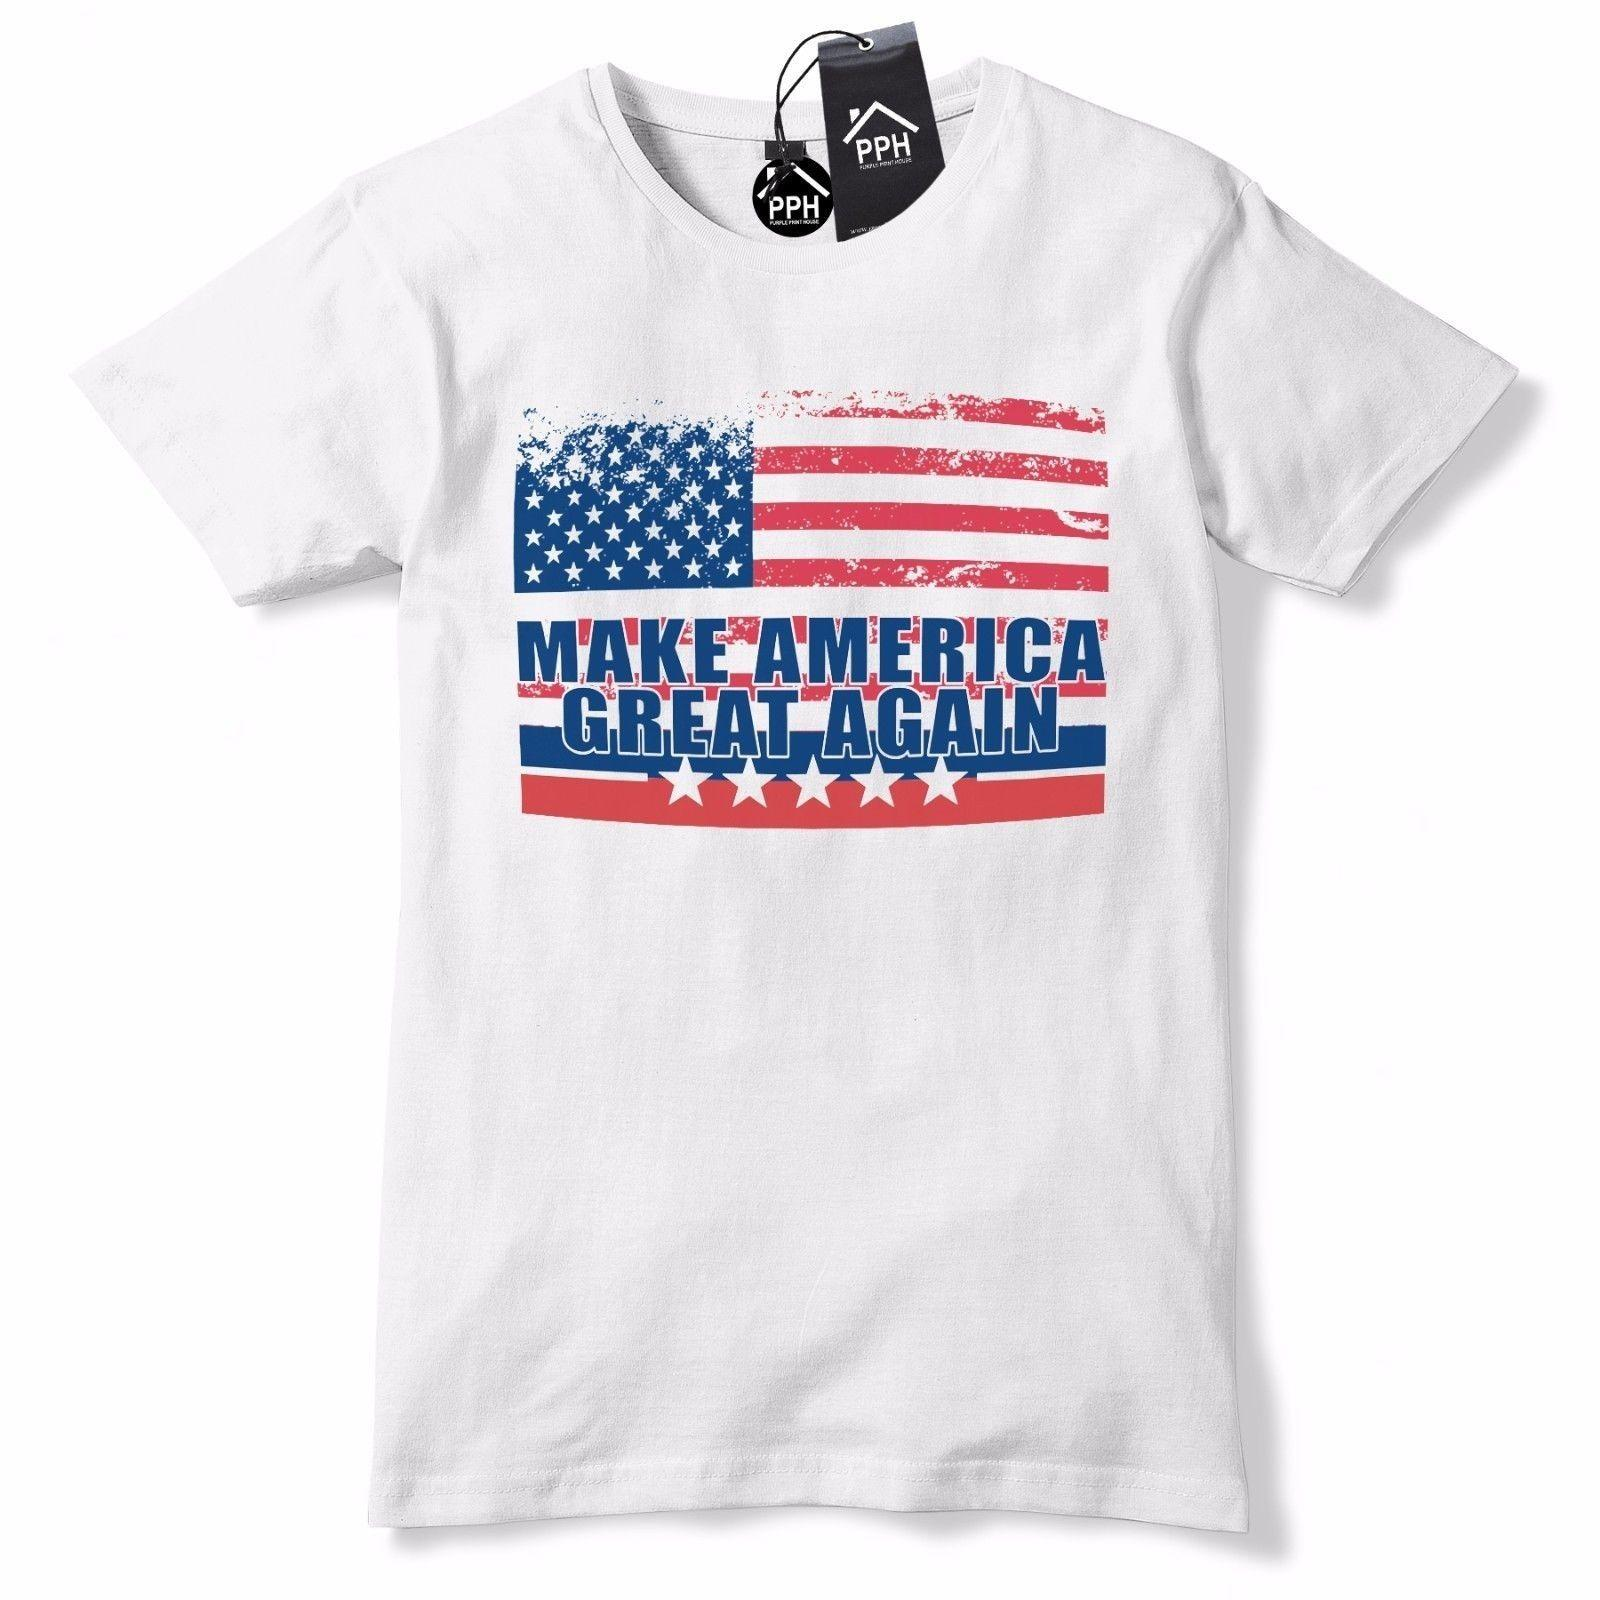 6932852fa49 US Vintage Flag Make America Great Again T Shirt Trump Tee Baseball Cap USA  472 Funny Unisex Casual Tee Gift T Shirt 24 Hours Buy Cool Shirts Online  From ...